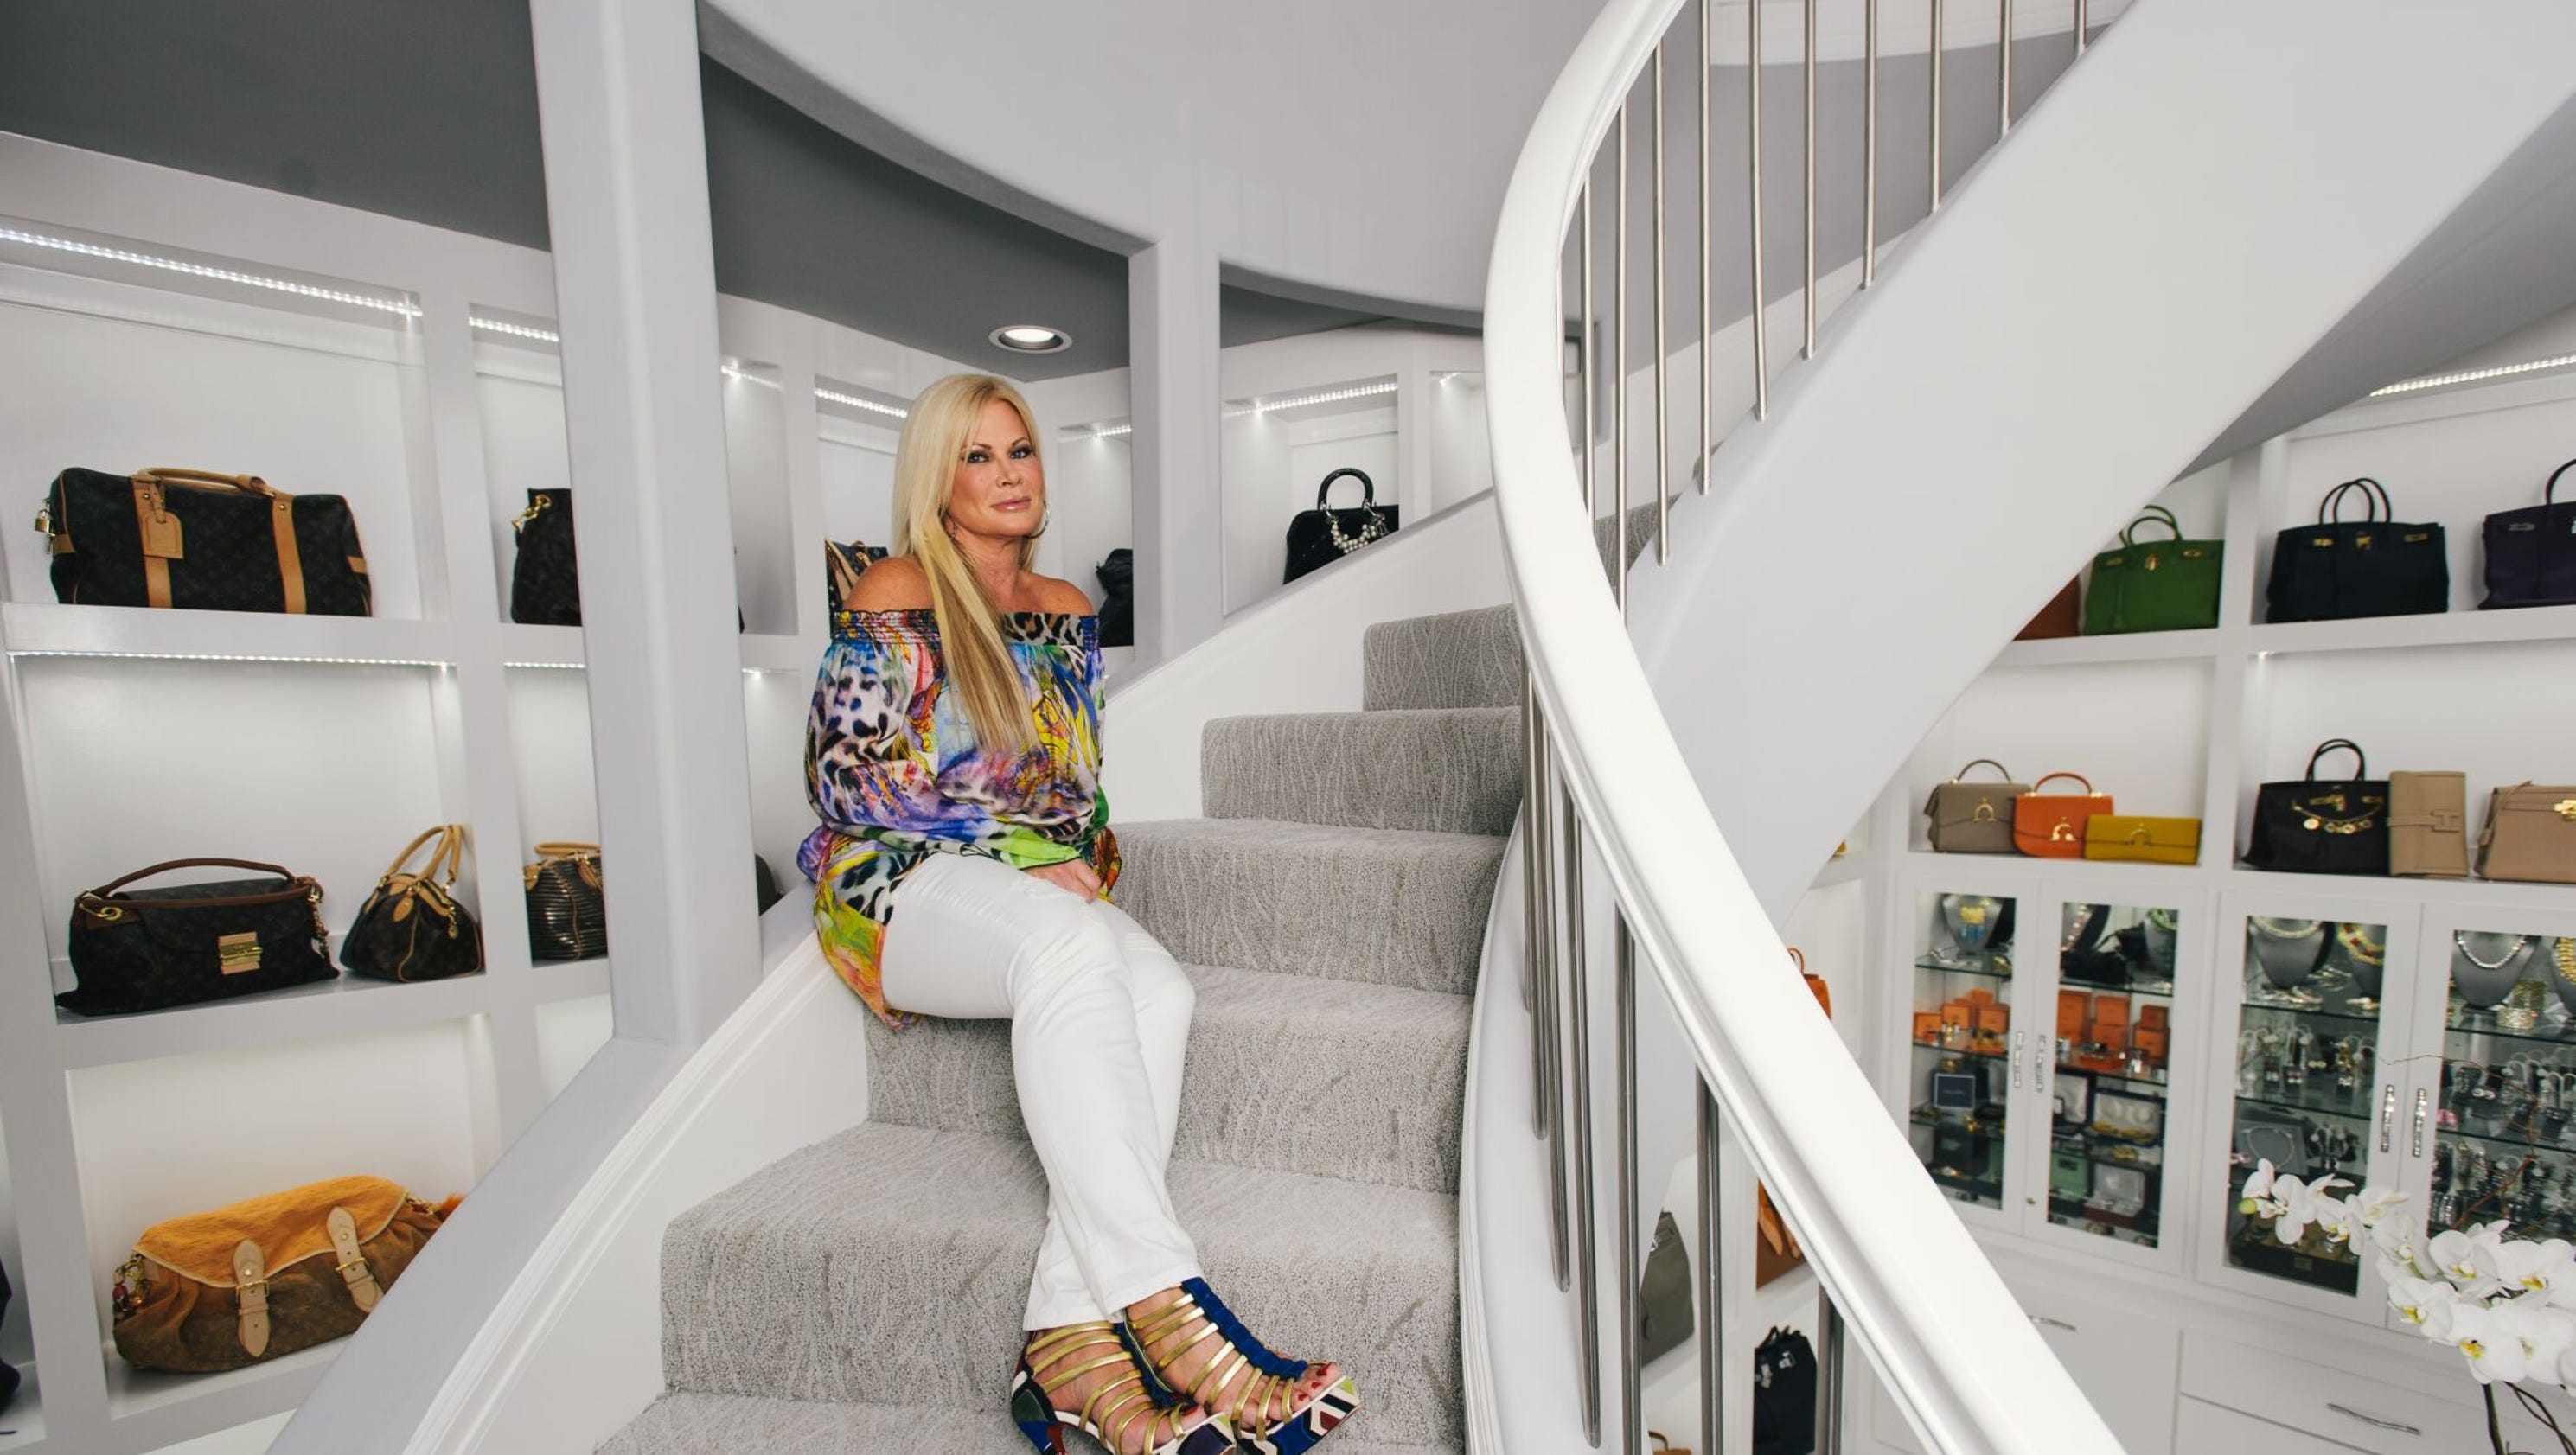 Theresa Roemer With World S Biggest Closet Shares Personal